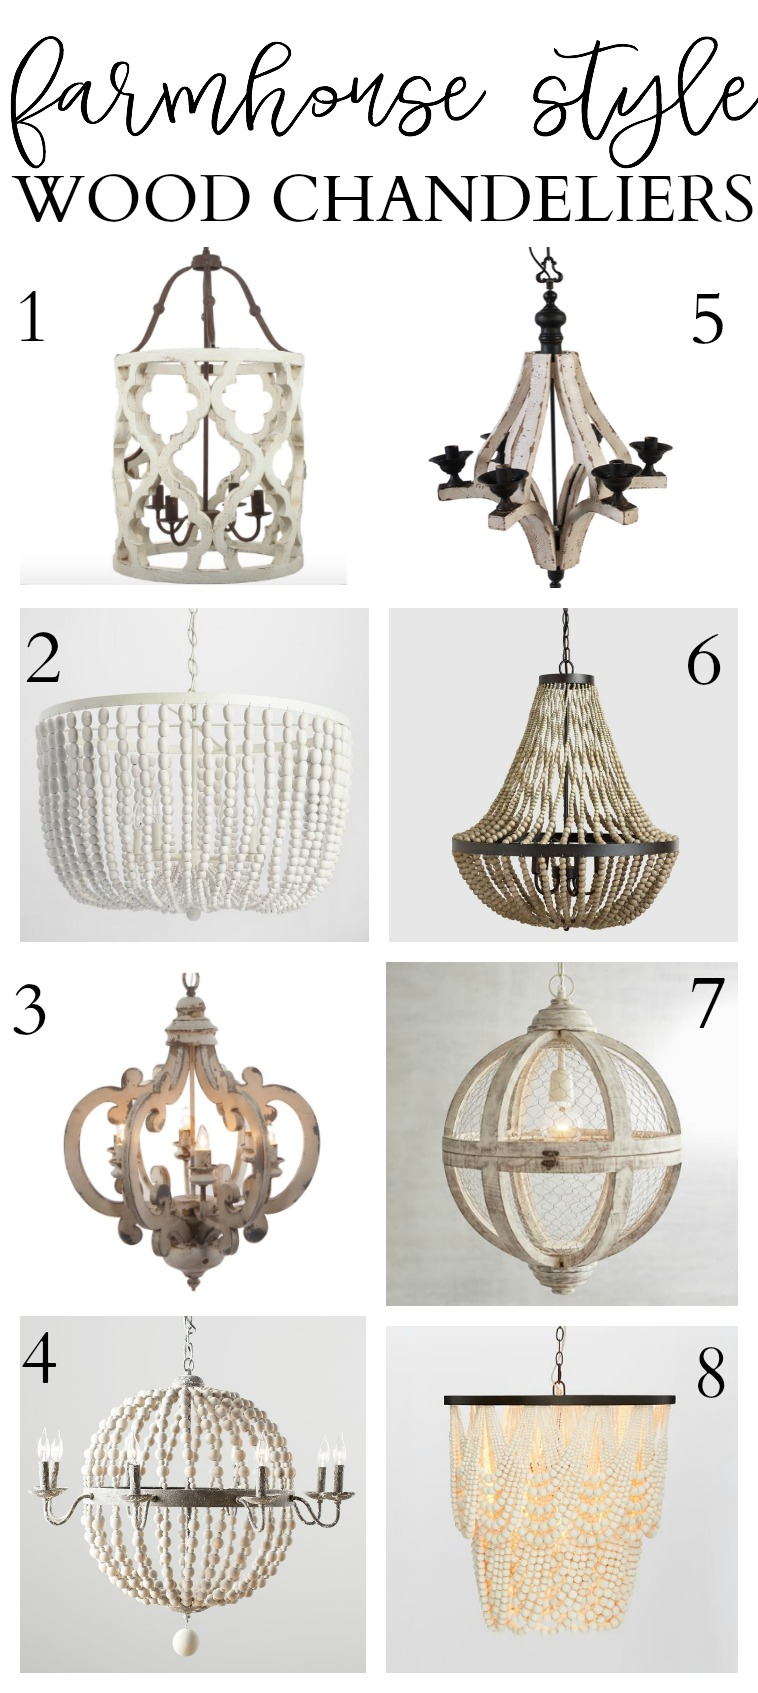 8 Farmhouse Style Wood Chandeliers